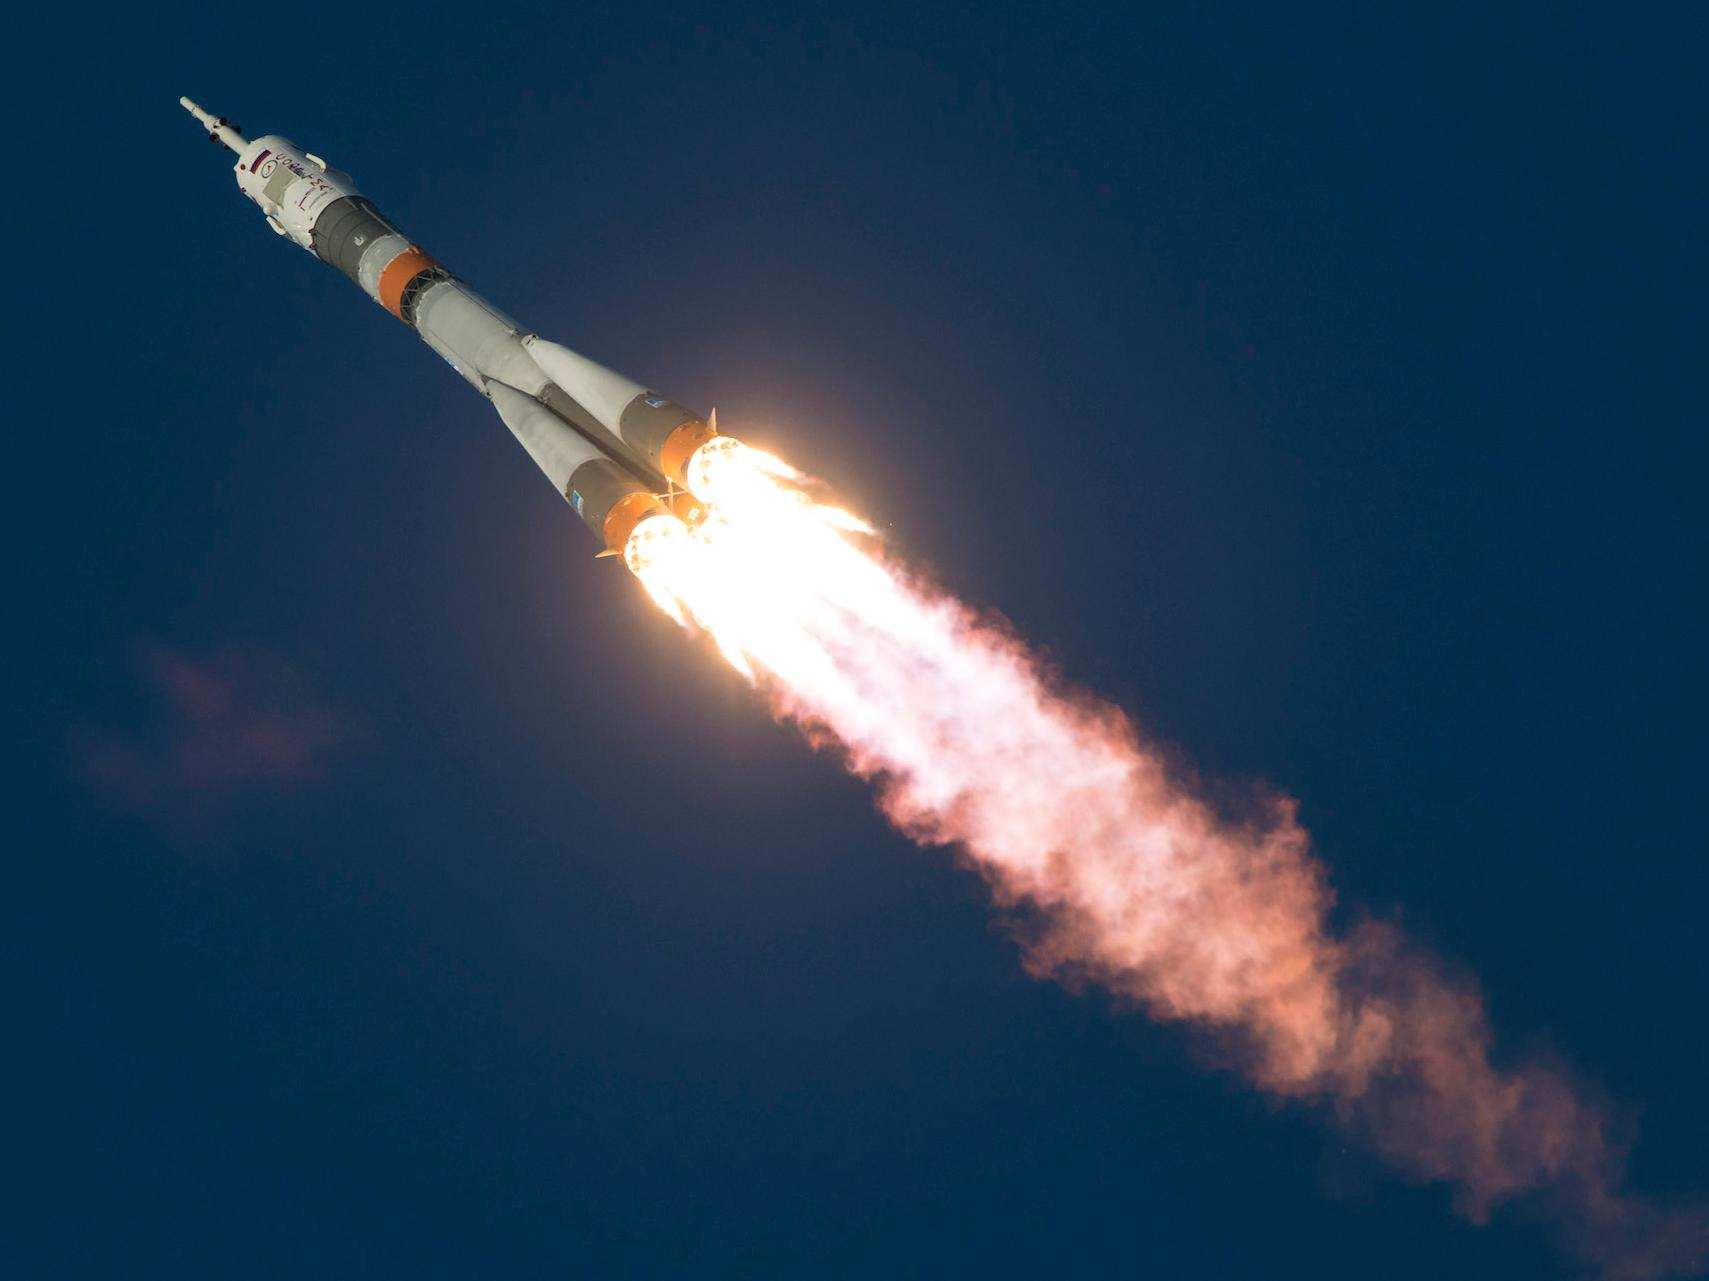 NASA is in a strange and expensive pickle with the Russians